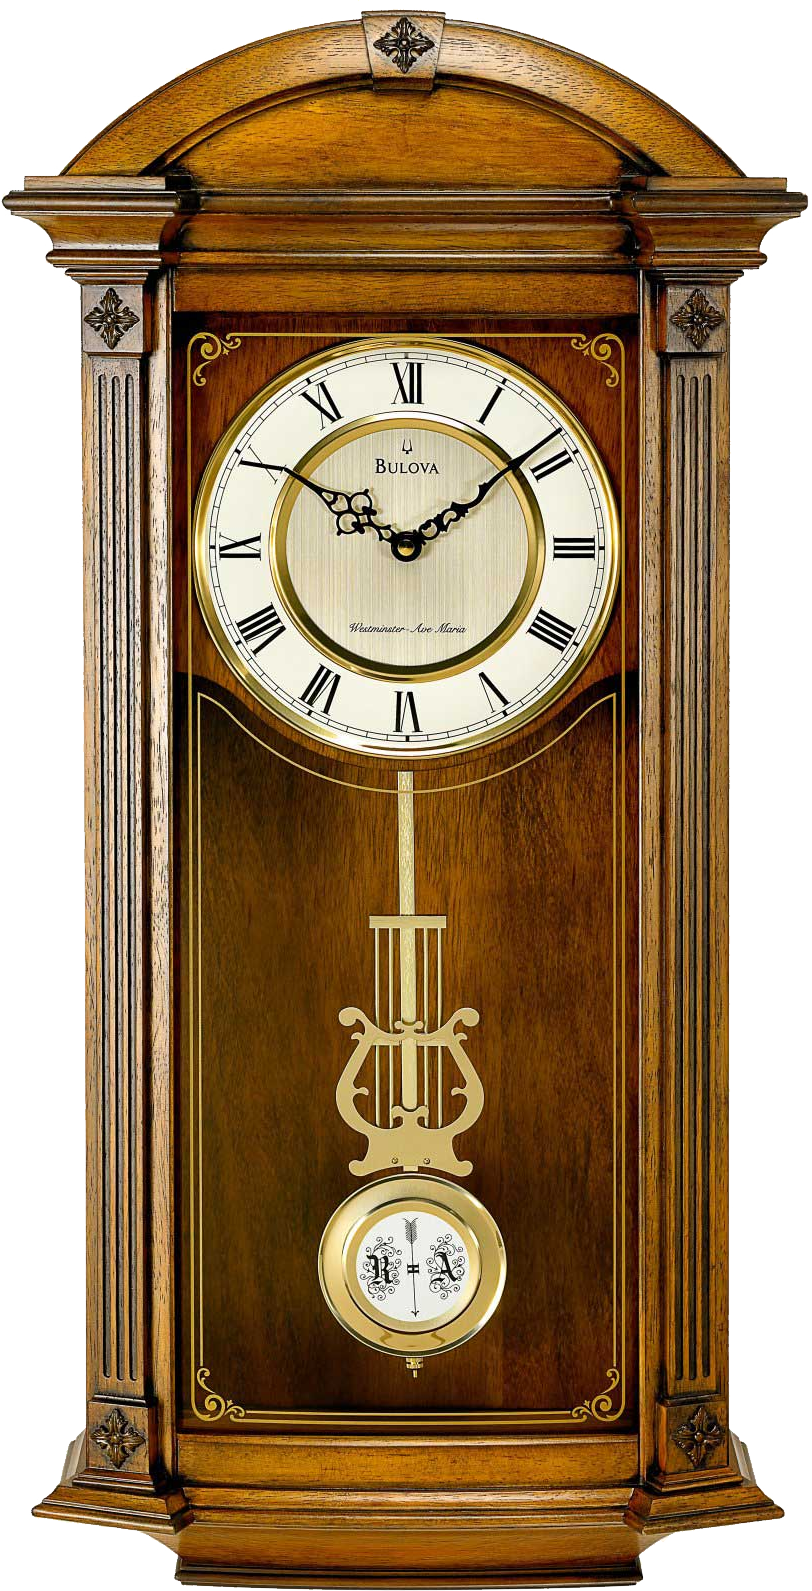 Download this high resolution Clock High Quality PNG